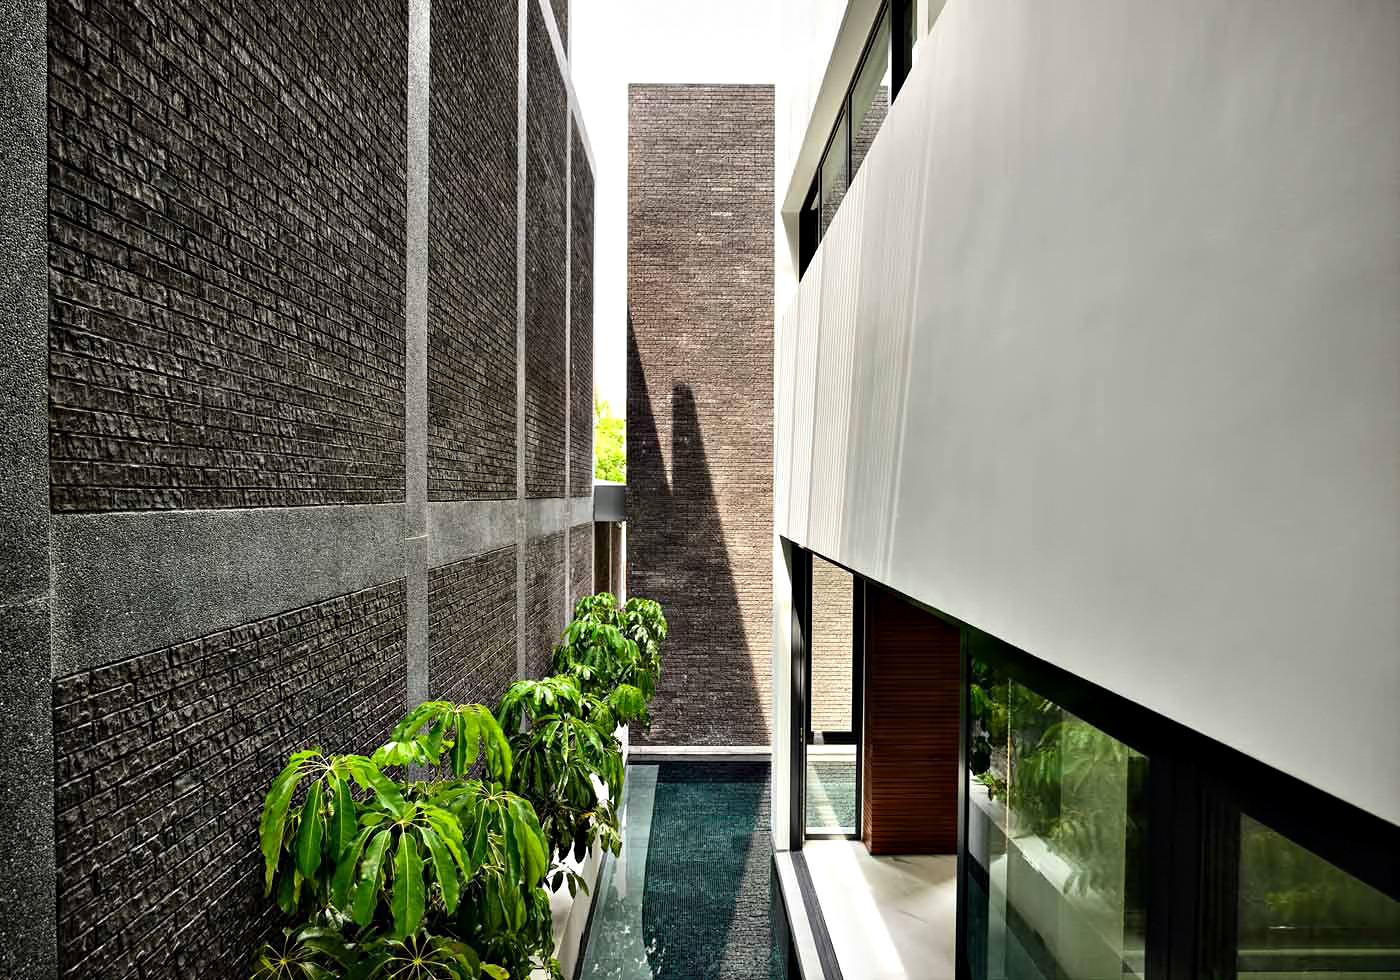 The Space Between Walls House – Prices of Wales Rd, Singapore